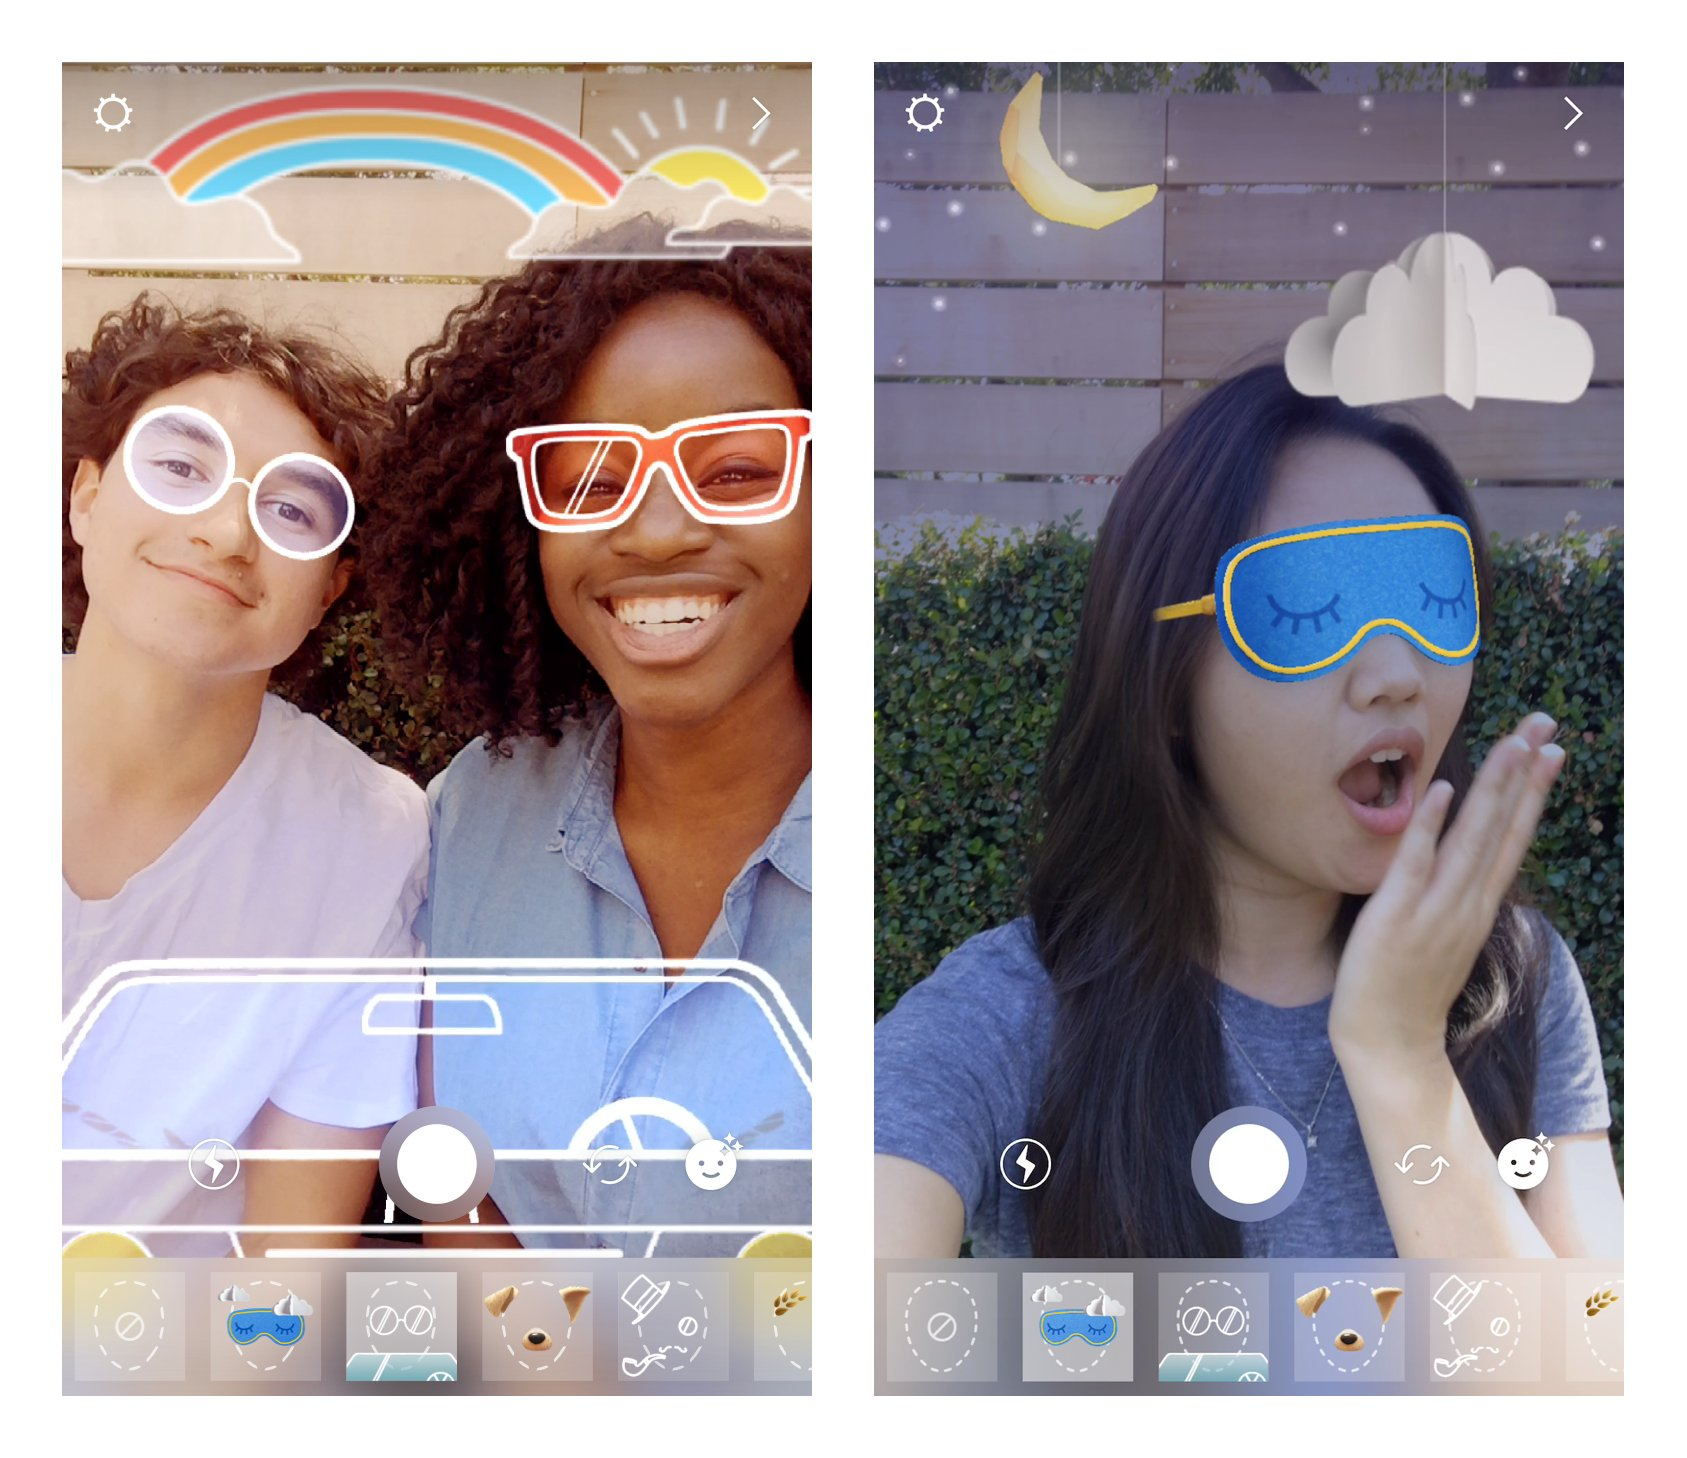 New face filters alert! Bring along a friend for the road trip filter �� or try on a sleep mask �� https://t.co/L52LYCBXoo